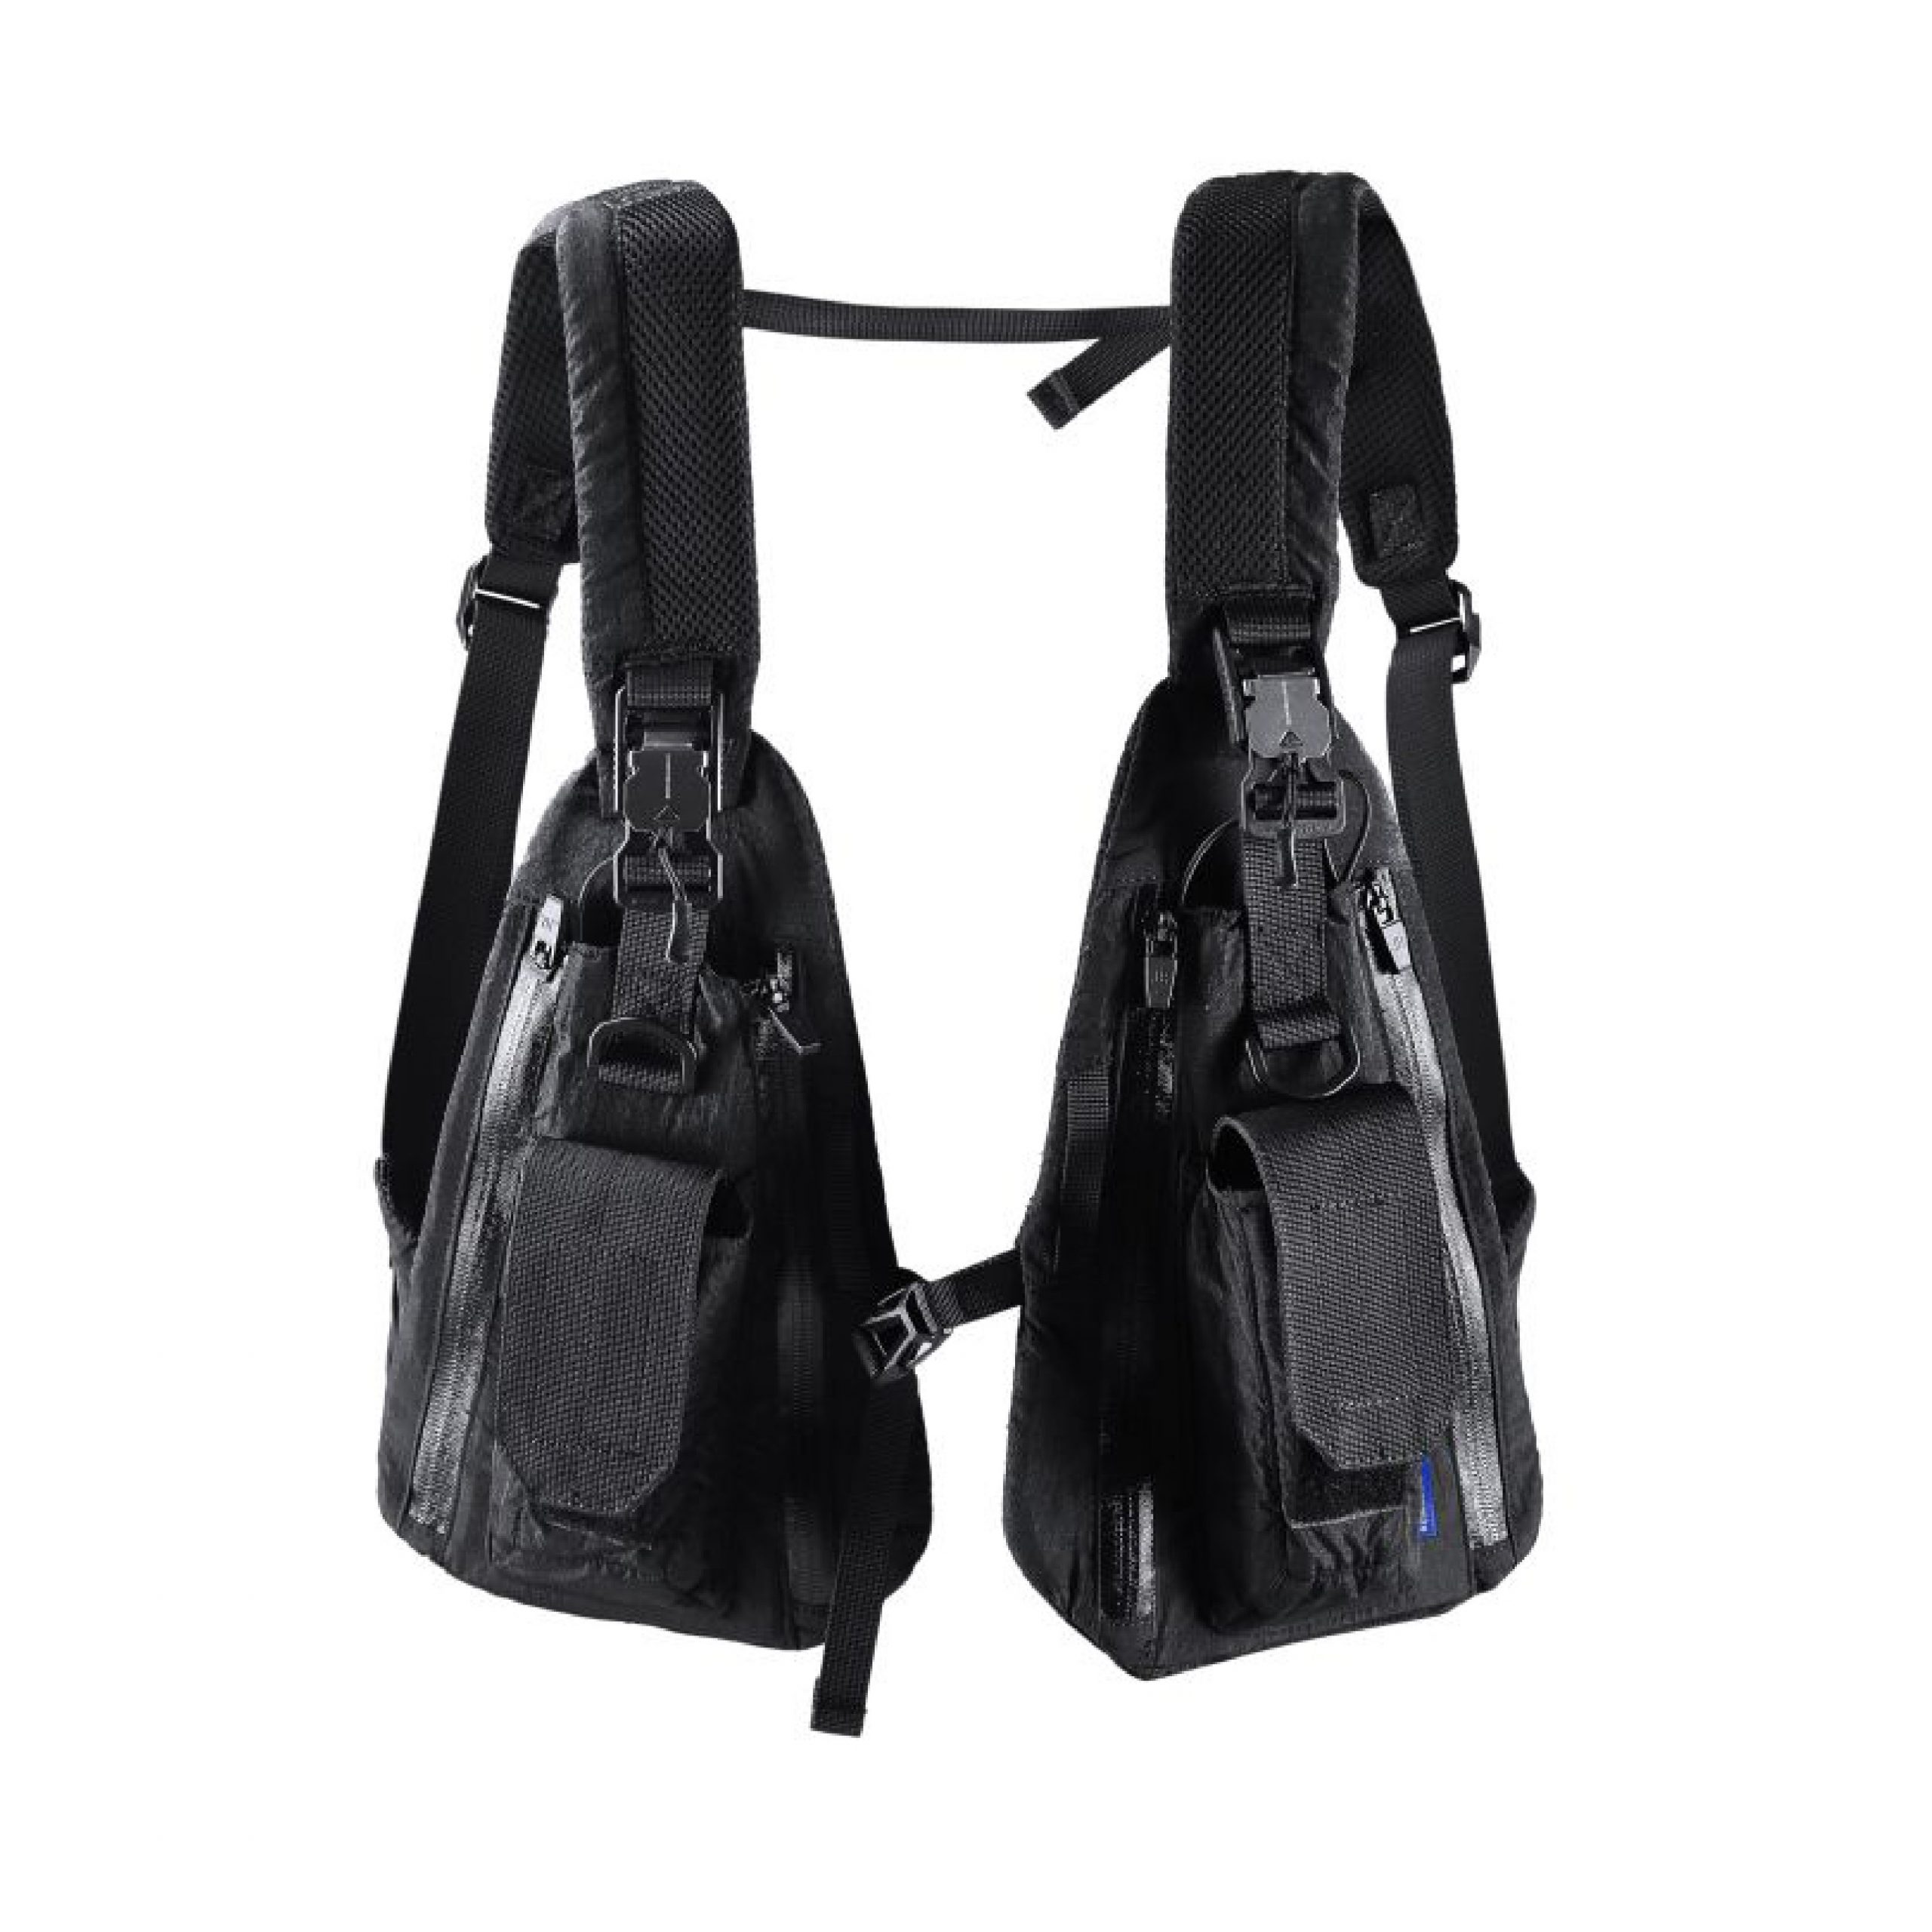 Reindee Lusion Tactical Techwear Chest rig bag system